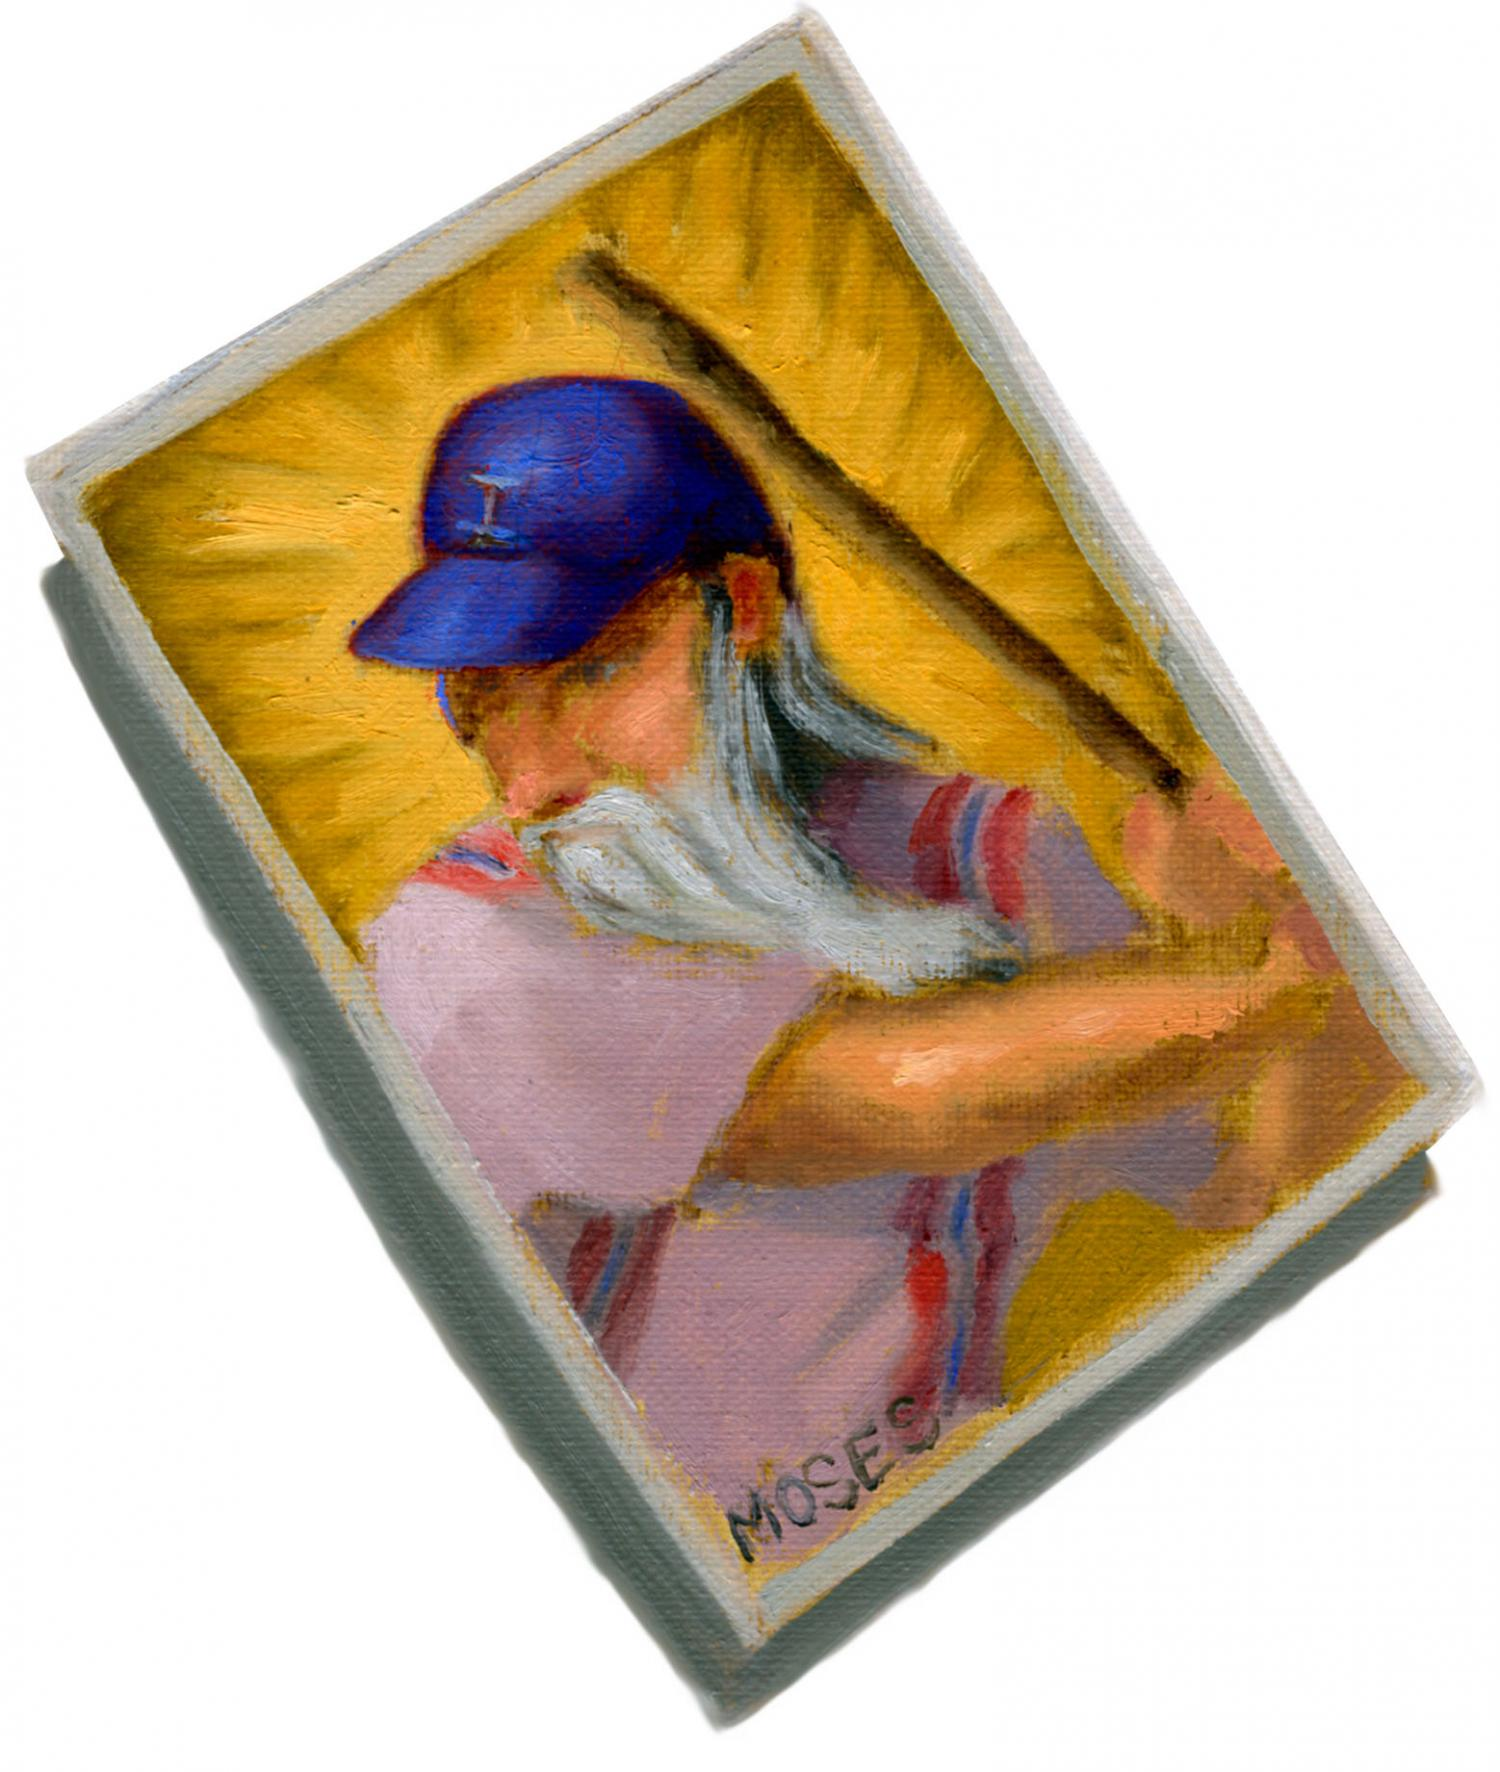 The Baseball Playing Moses. Passover Haggadah. Seder